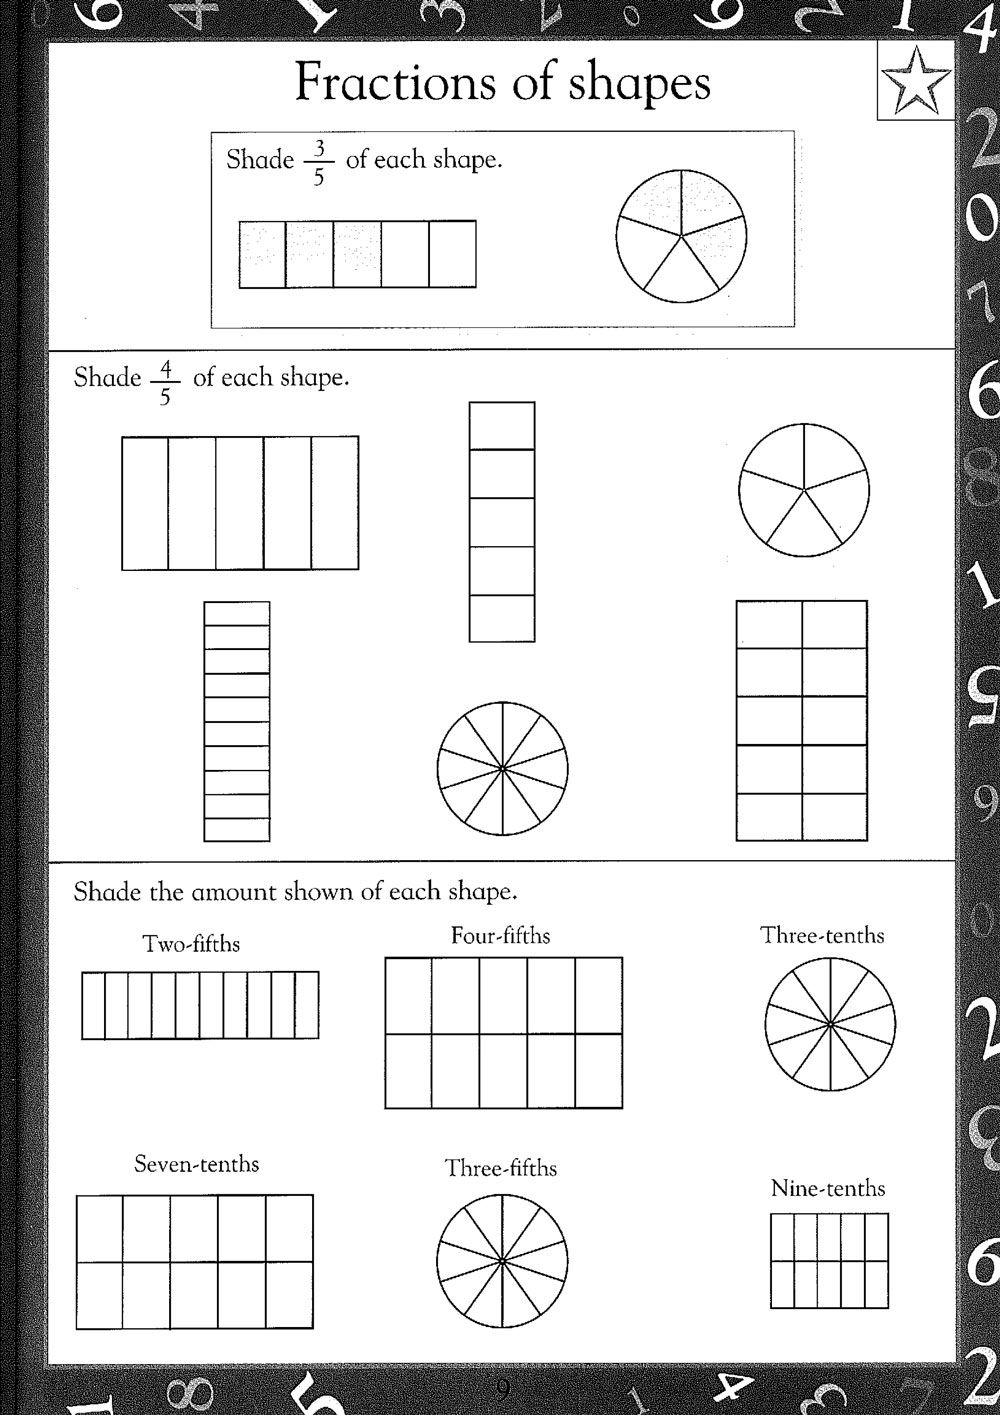 download maths worksheets for kids best collection of maths  download maths worksheets for kids best collection of maths worksheets  which helps a lot for maths related activities